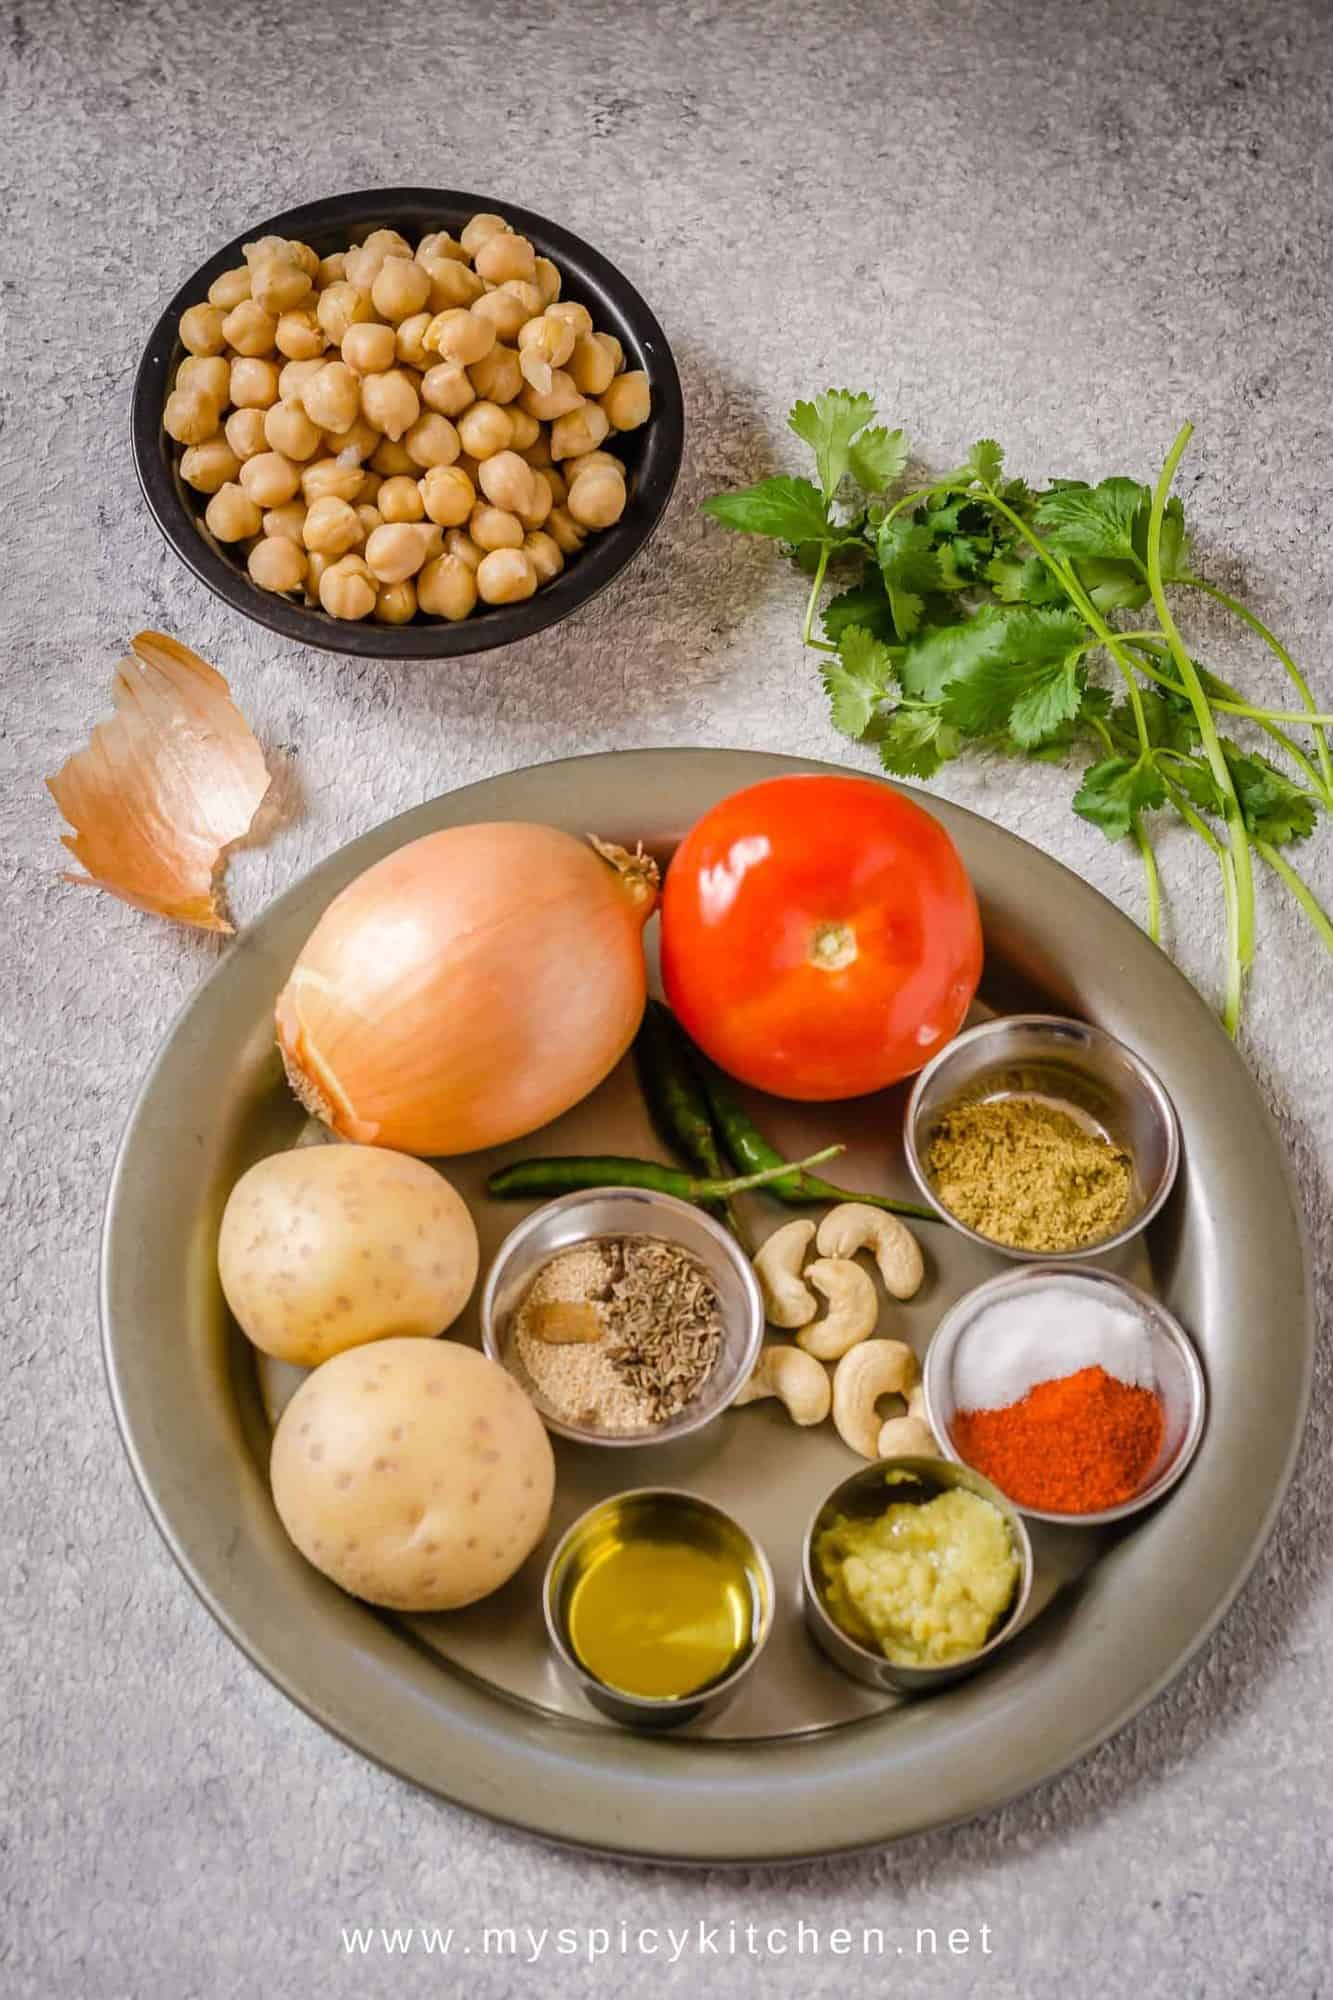 Ingredients for chana masala in a tray and chickpeas on the side.